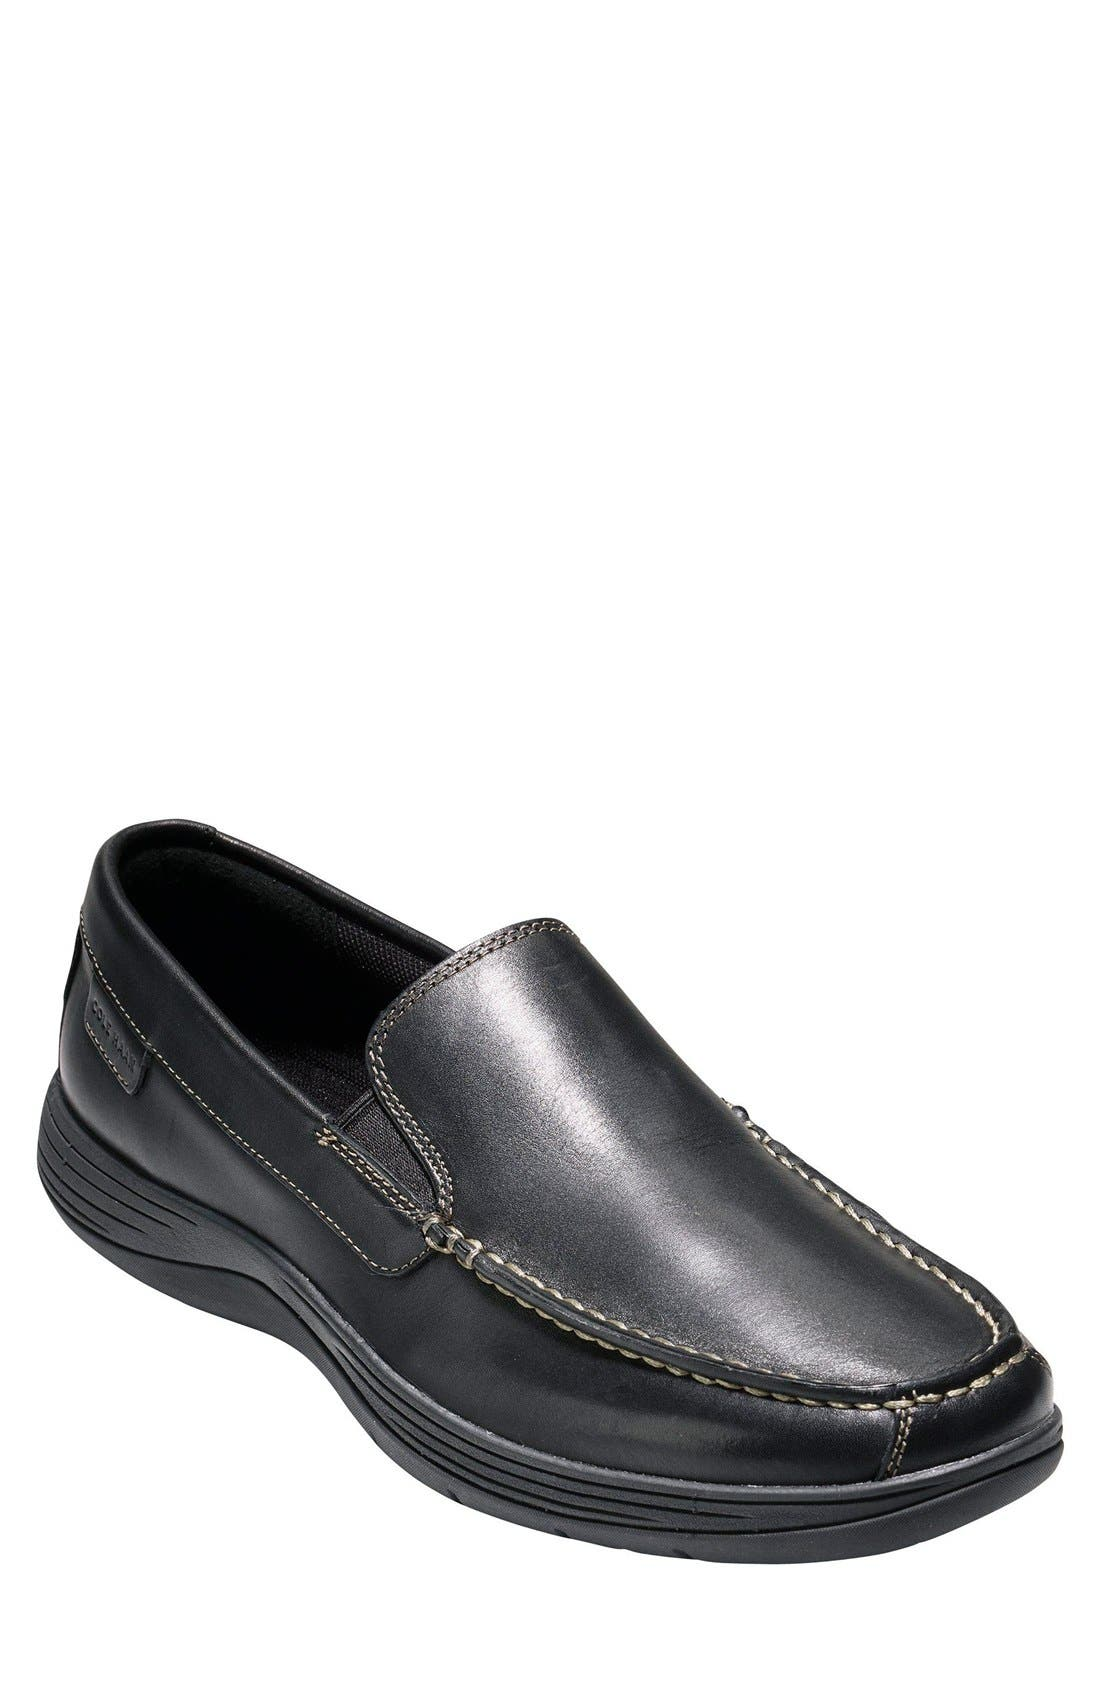 'Lewiston' Loafer,                         Main,                         color, 001